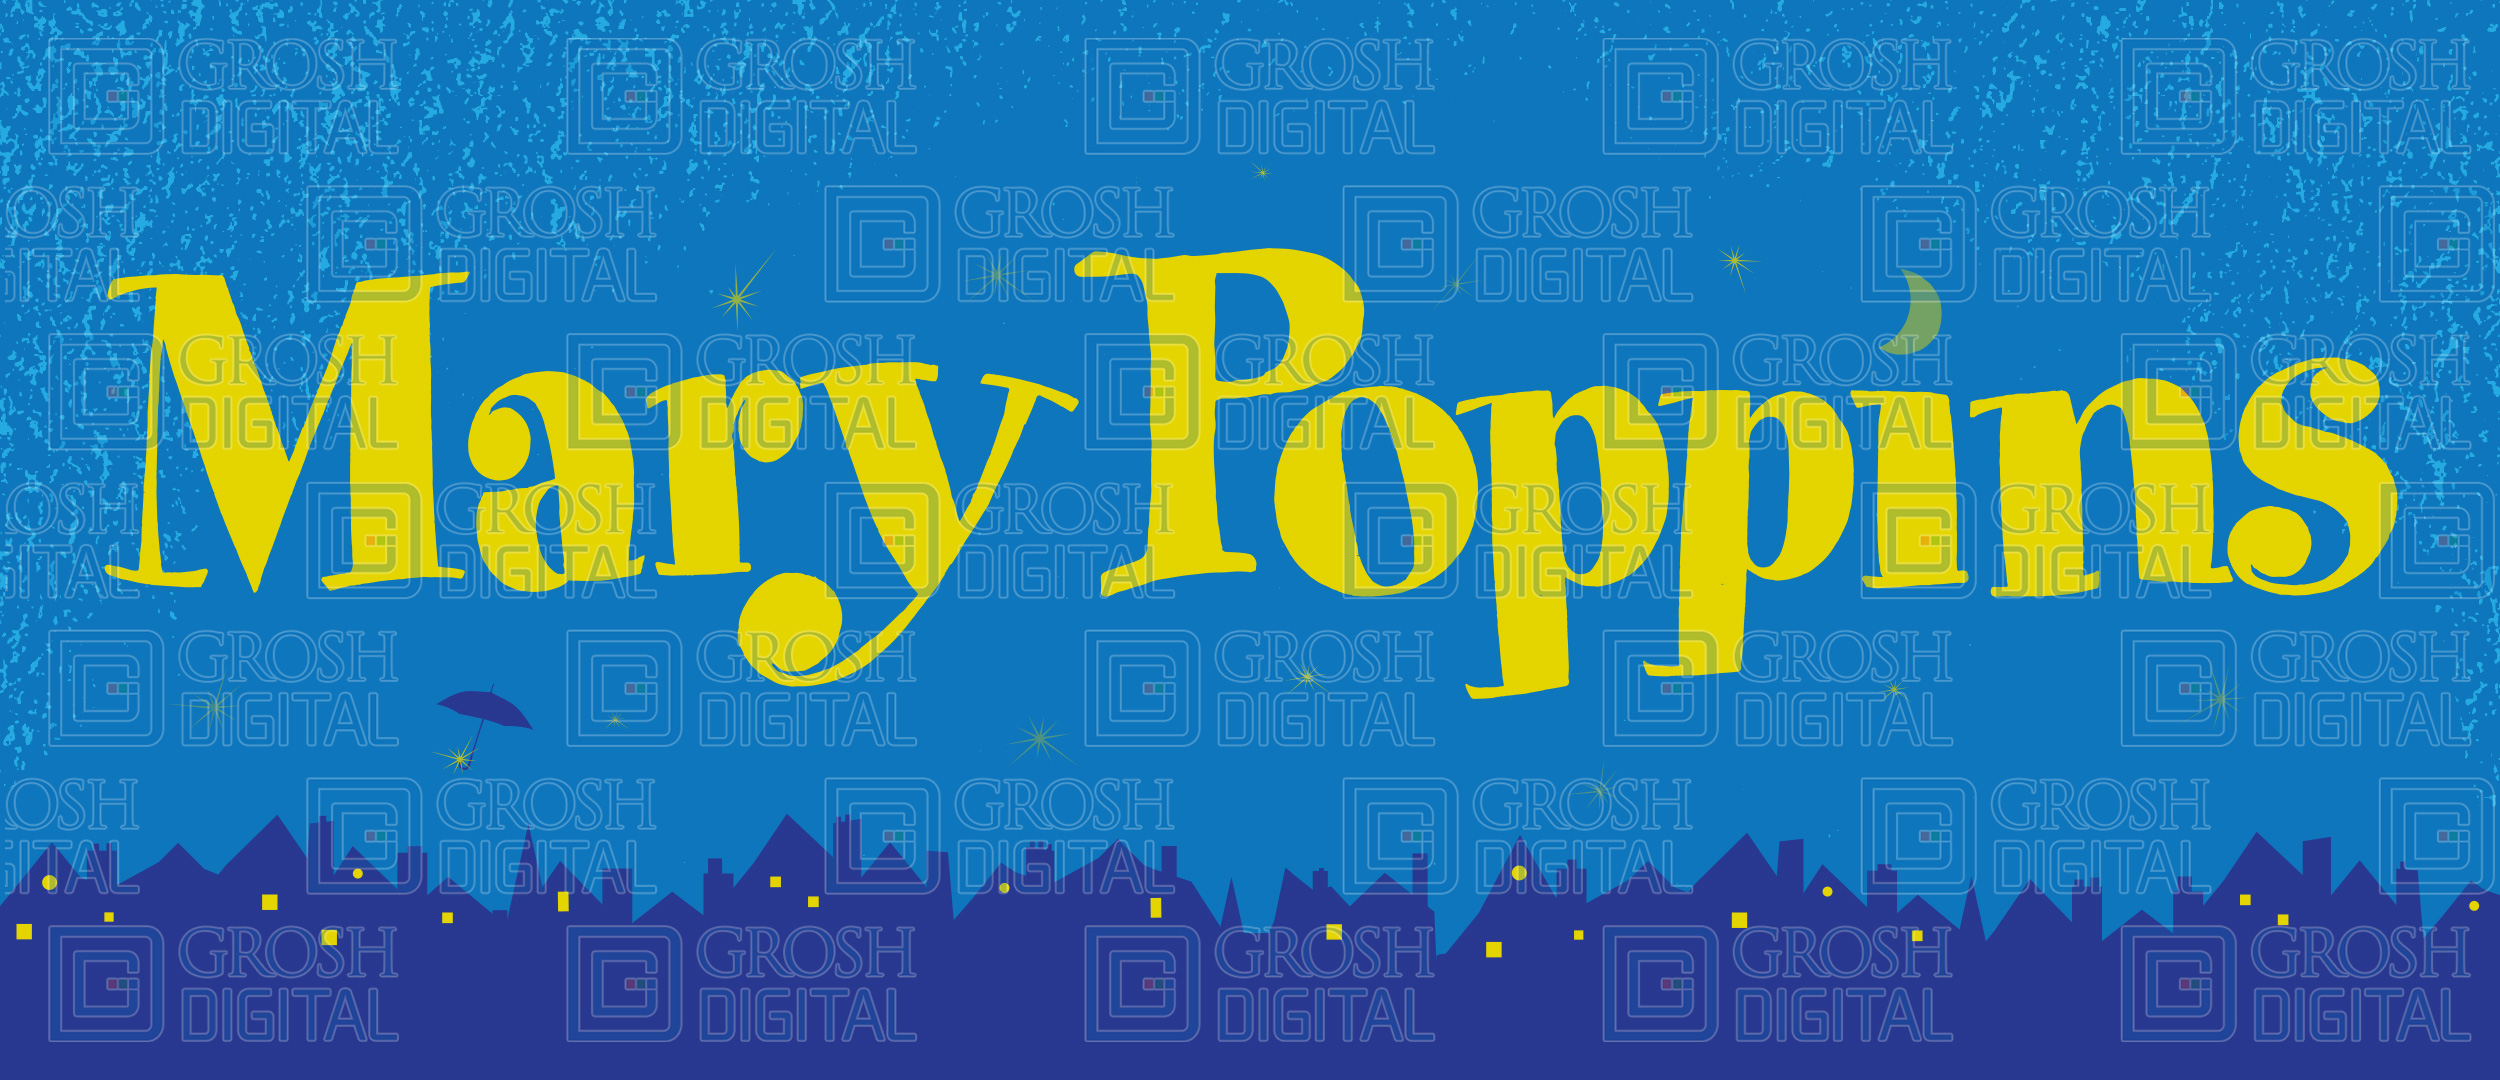 Mary Poppins Show Curtain Projected Backdrops Grosh Digital